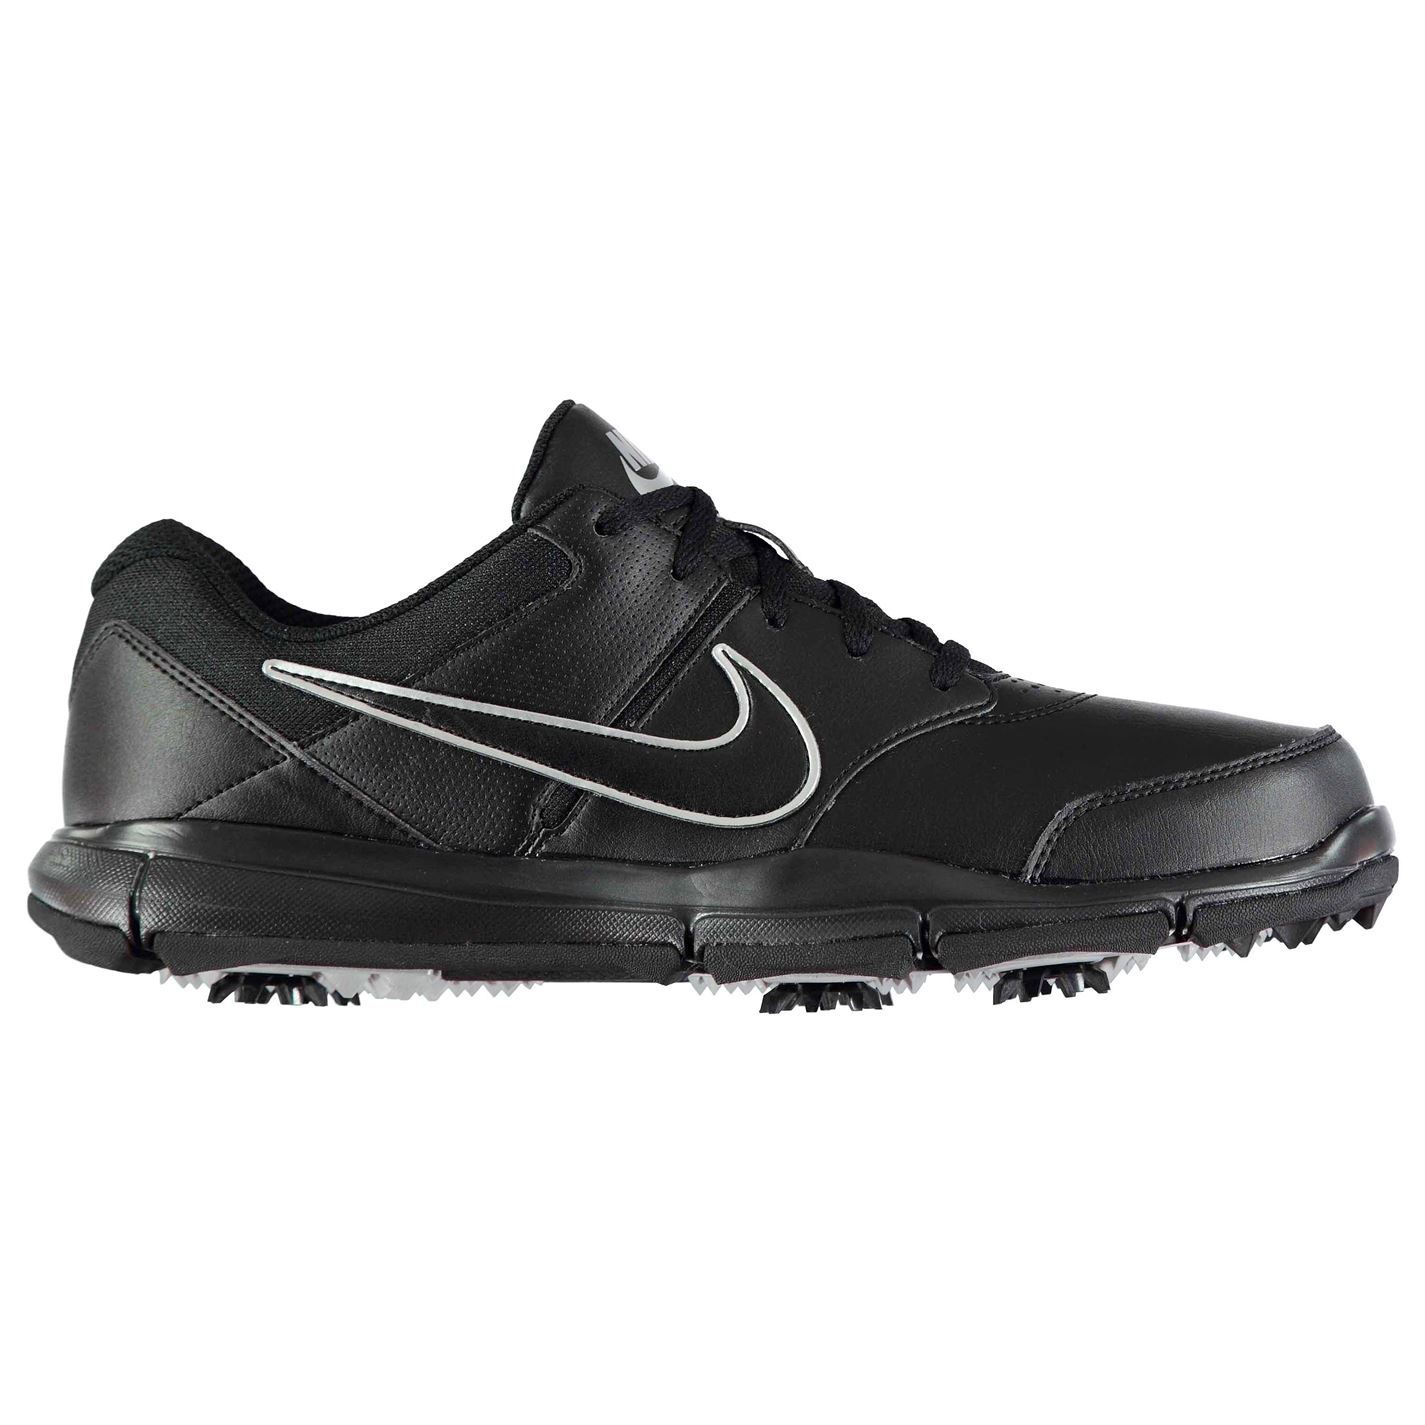 Nike-Durasport-4-Spiked-Golf-Shoes-Mens-Spikes-Footwear thumbnail 7